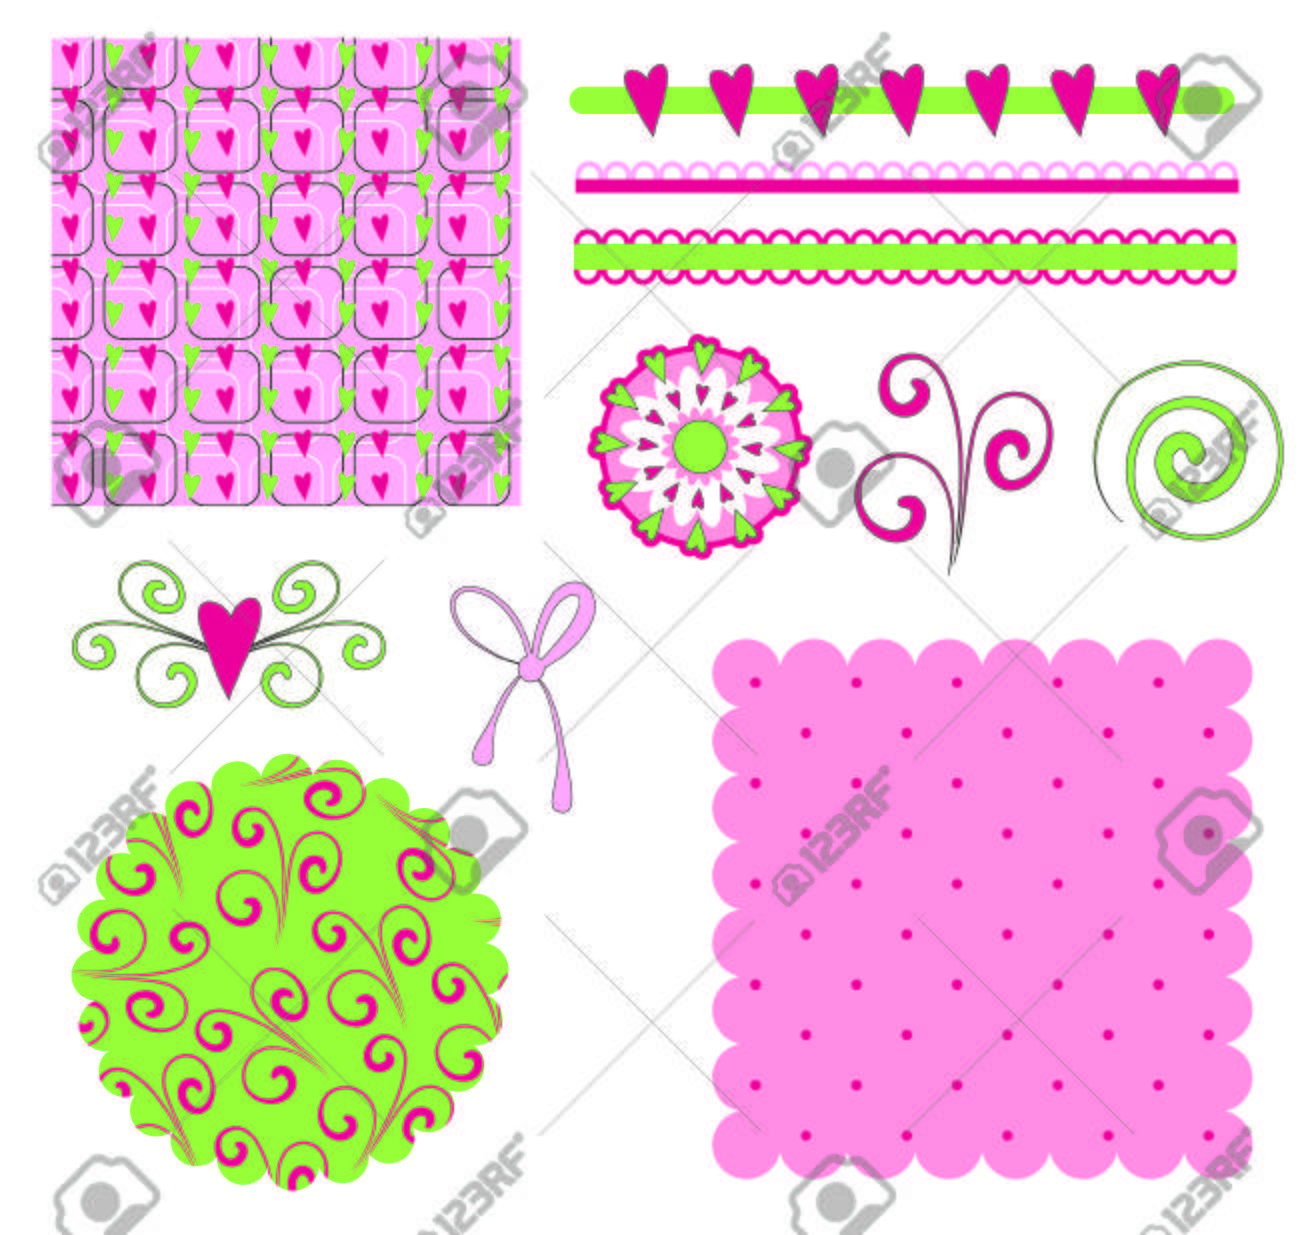 Scrapbooking elements Stock Vector - 8978312